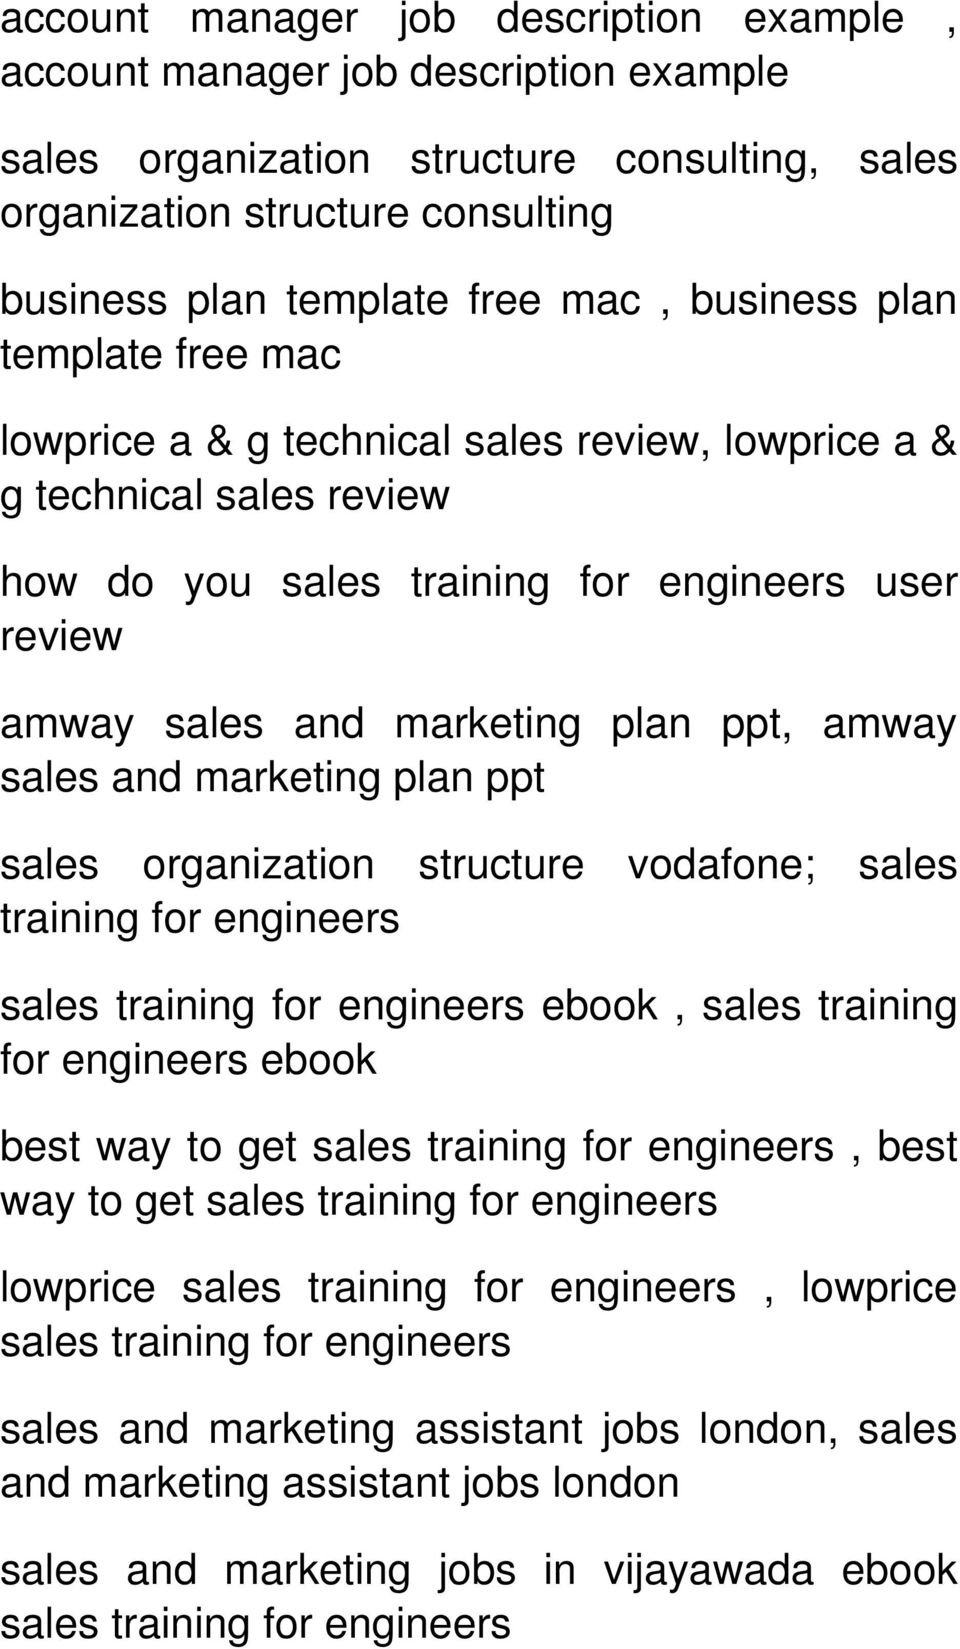 marketing plan ppt, amway sales and marketing plan ppt sales organization structure vodafone; sales sales ebook, sales training for engineers ebook best way to get sales, best